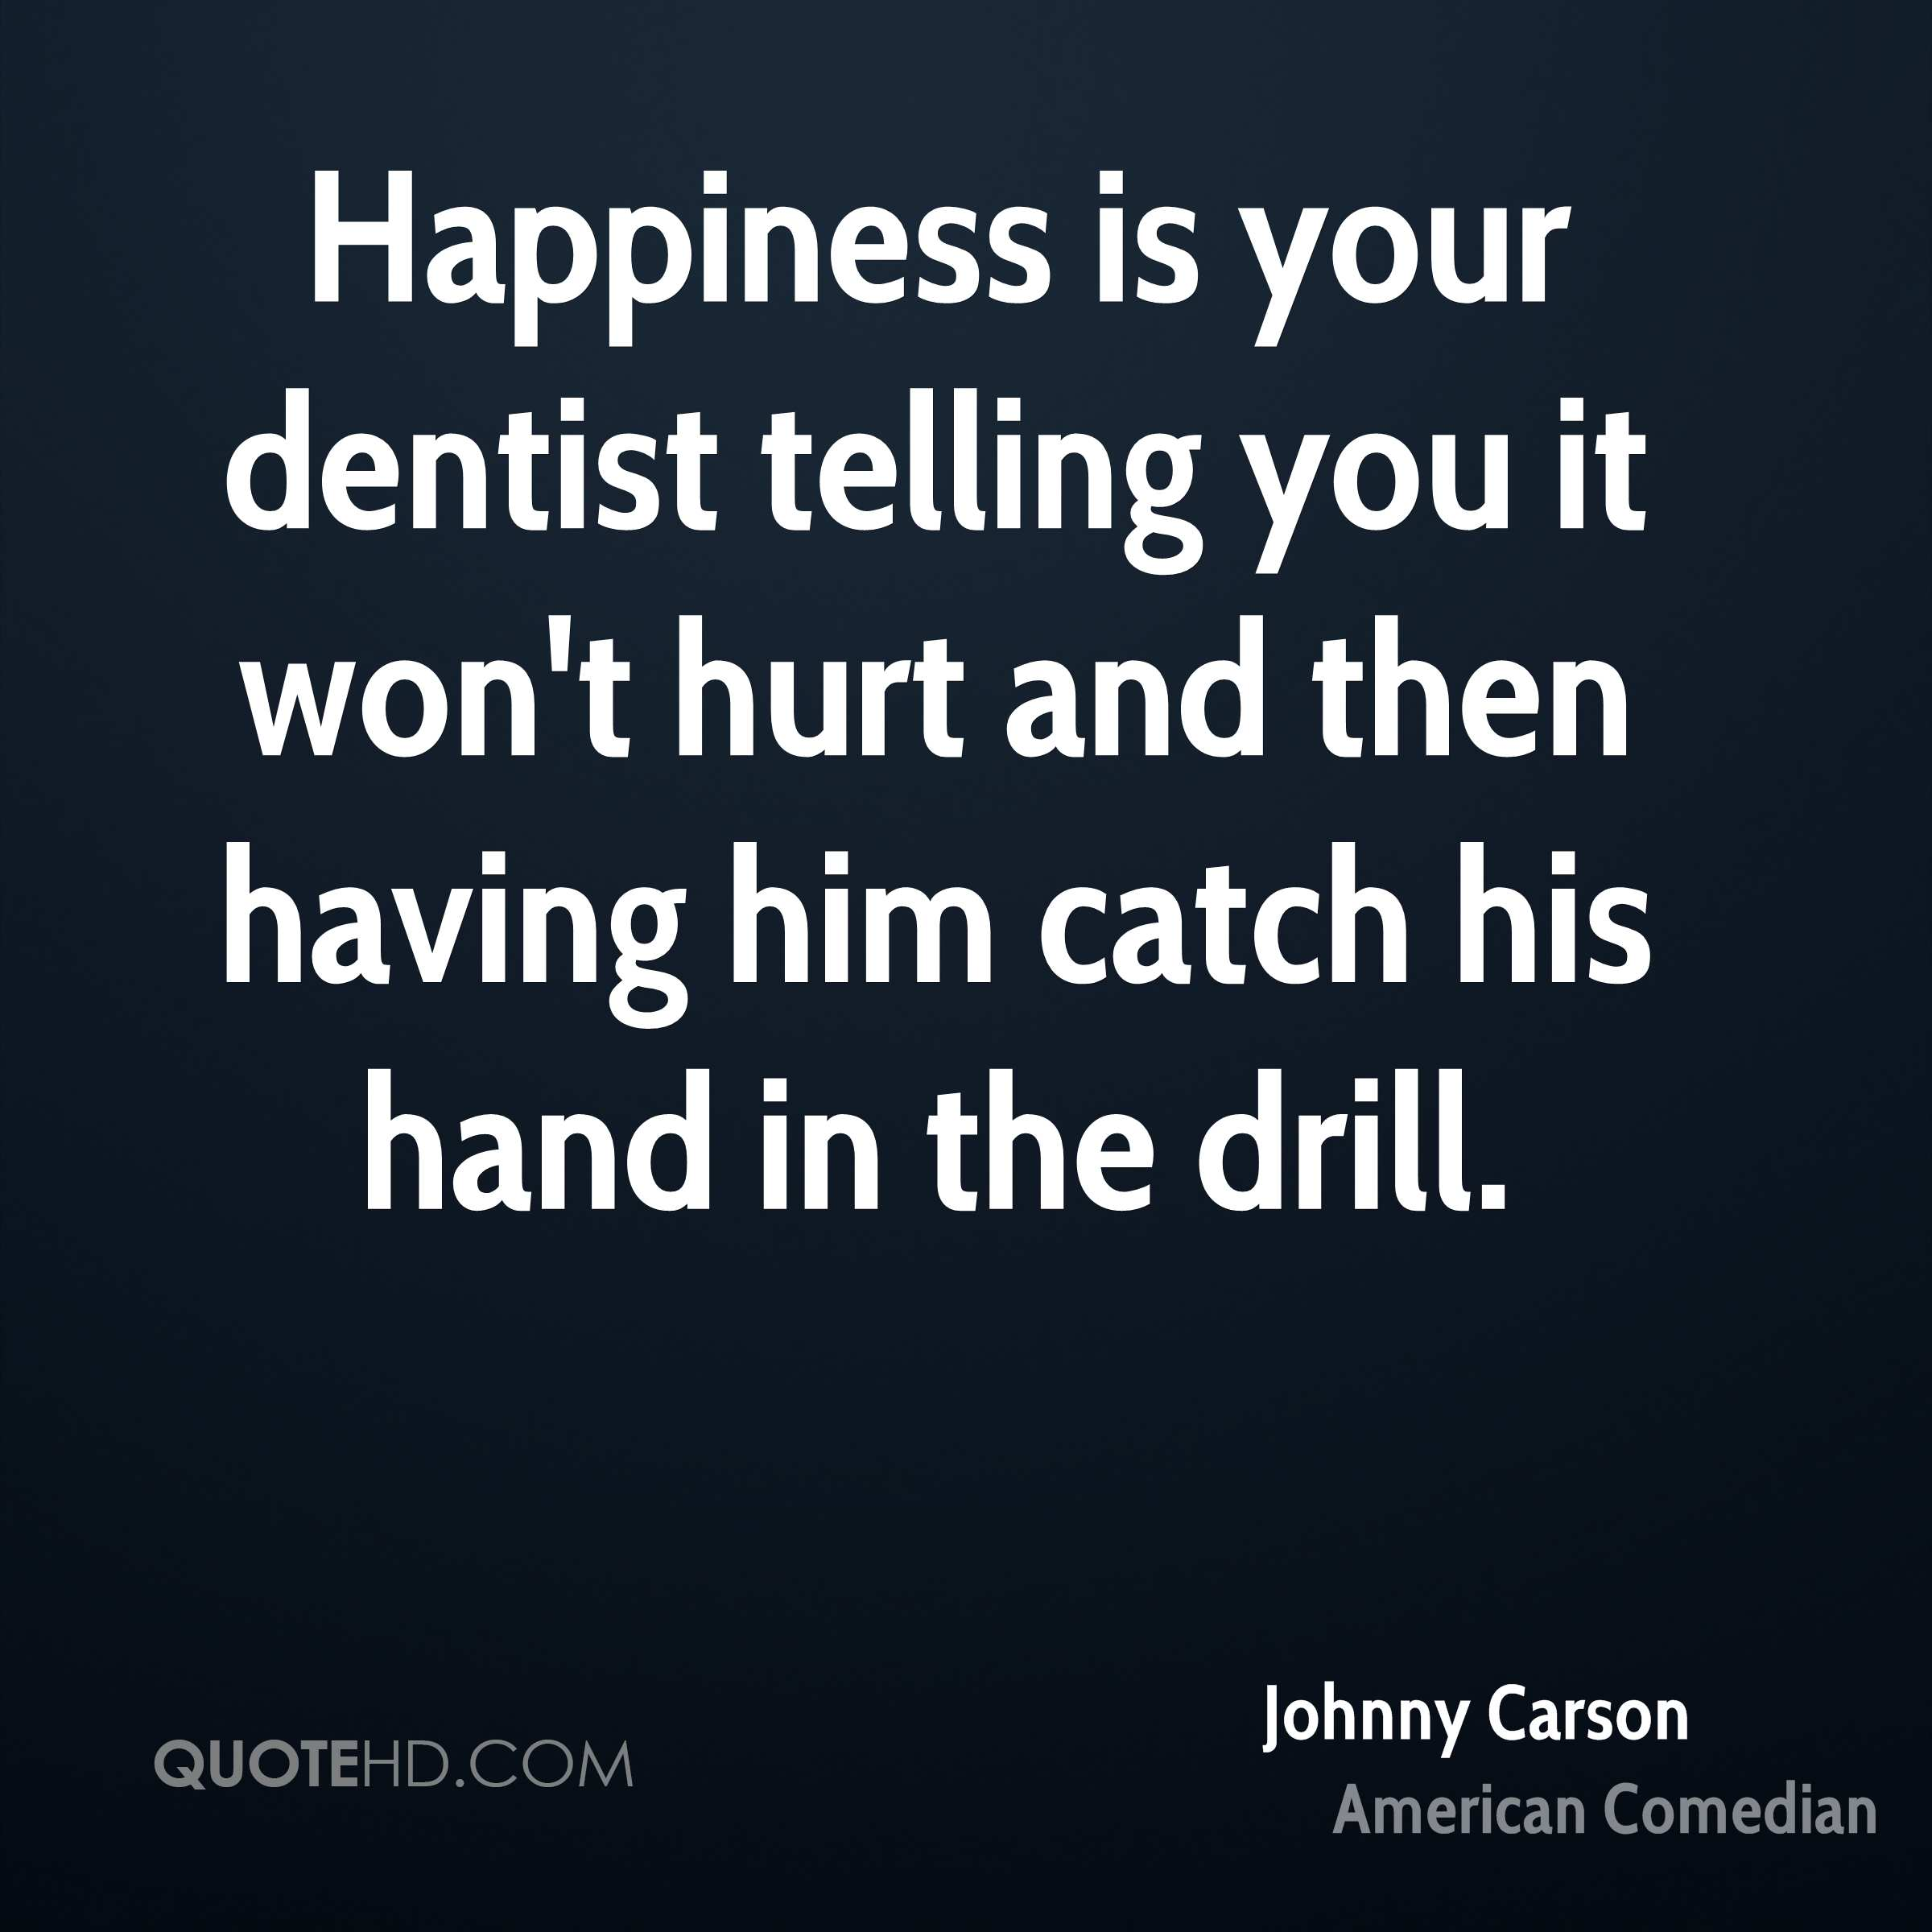 Happiness is your dentist telling you it won't hurt and then having him catch his hand in the drill.